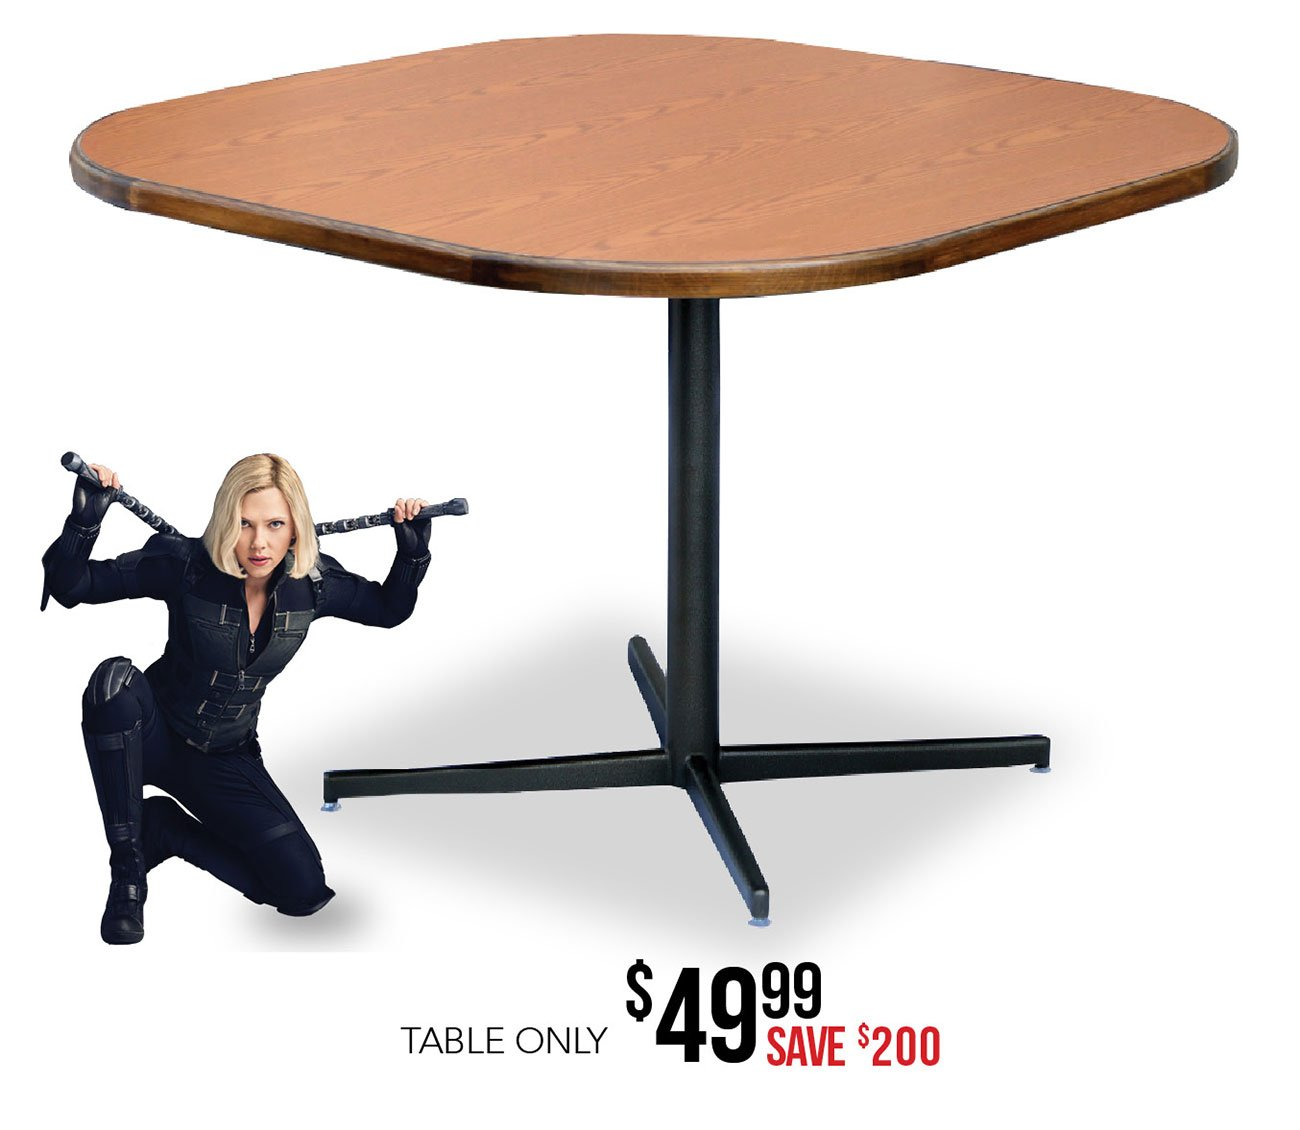 Table-only